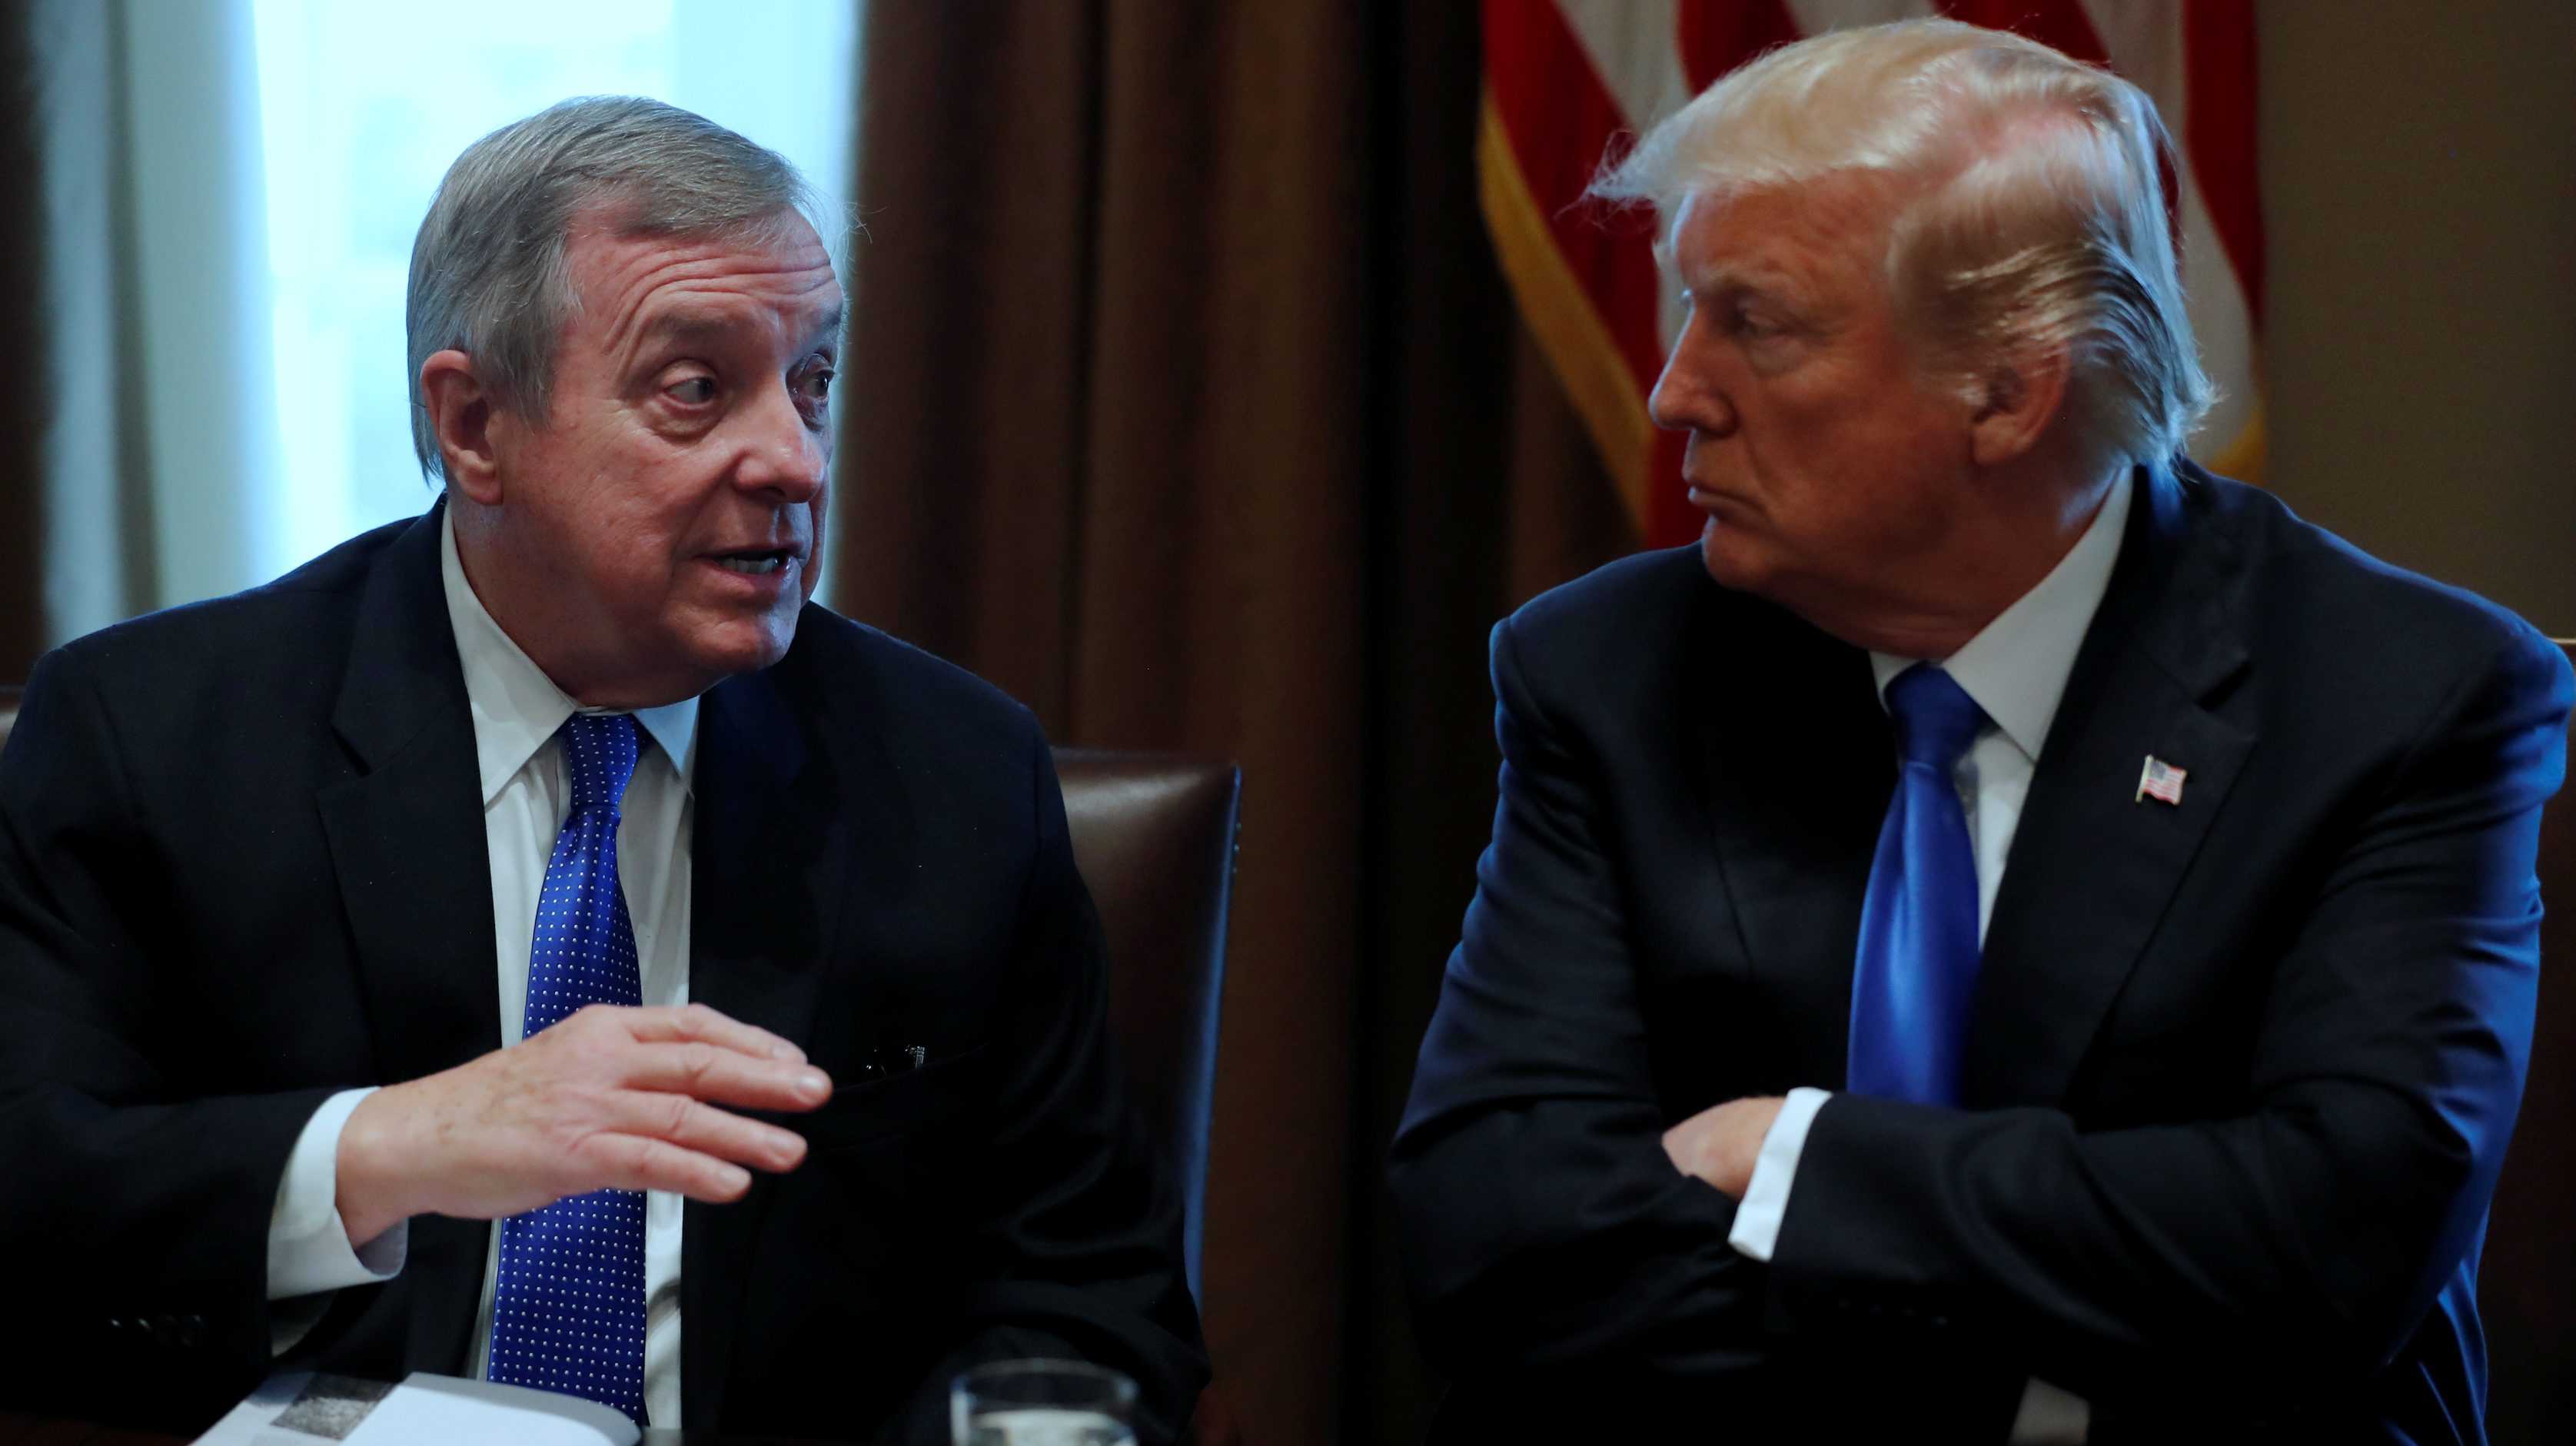 U.S. President Donald Trump, flanked by U.S. Senator Dick Durbin (D-IL), holds a bipartisan meeting with legislators on immigration reform at the White House in Washington, U.S. January 9, 2018.  REUTERS/Jonathan Ernst - RC137D306230